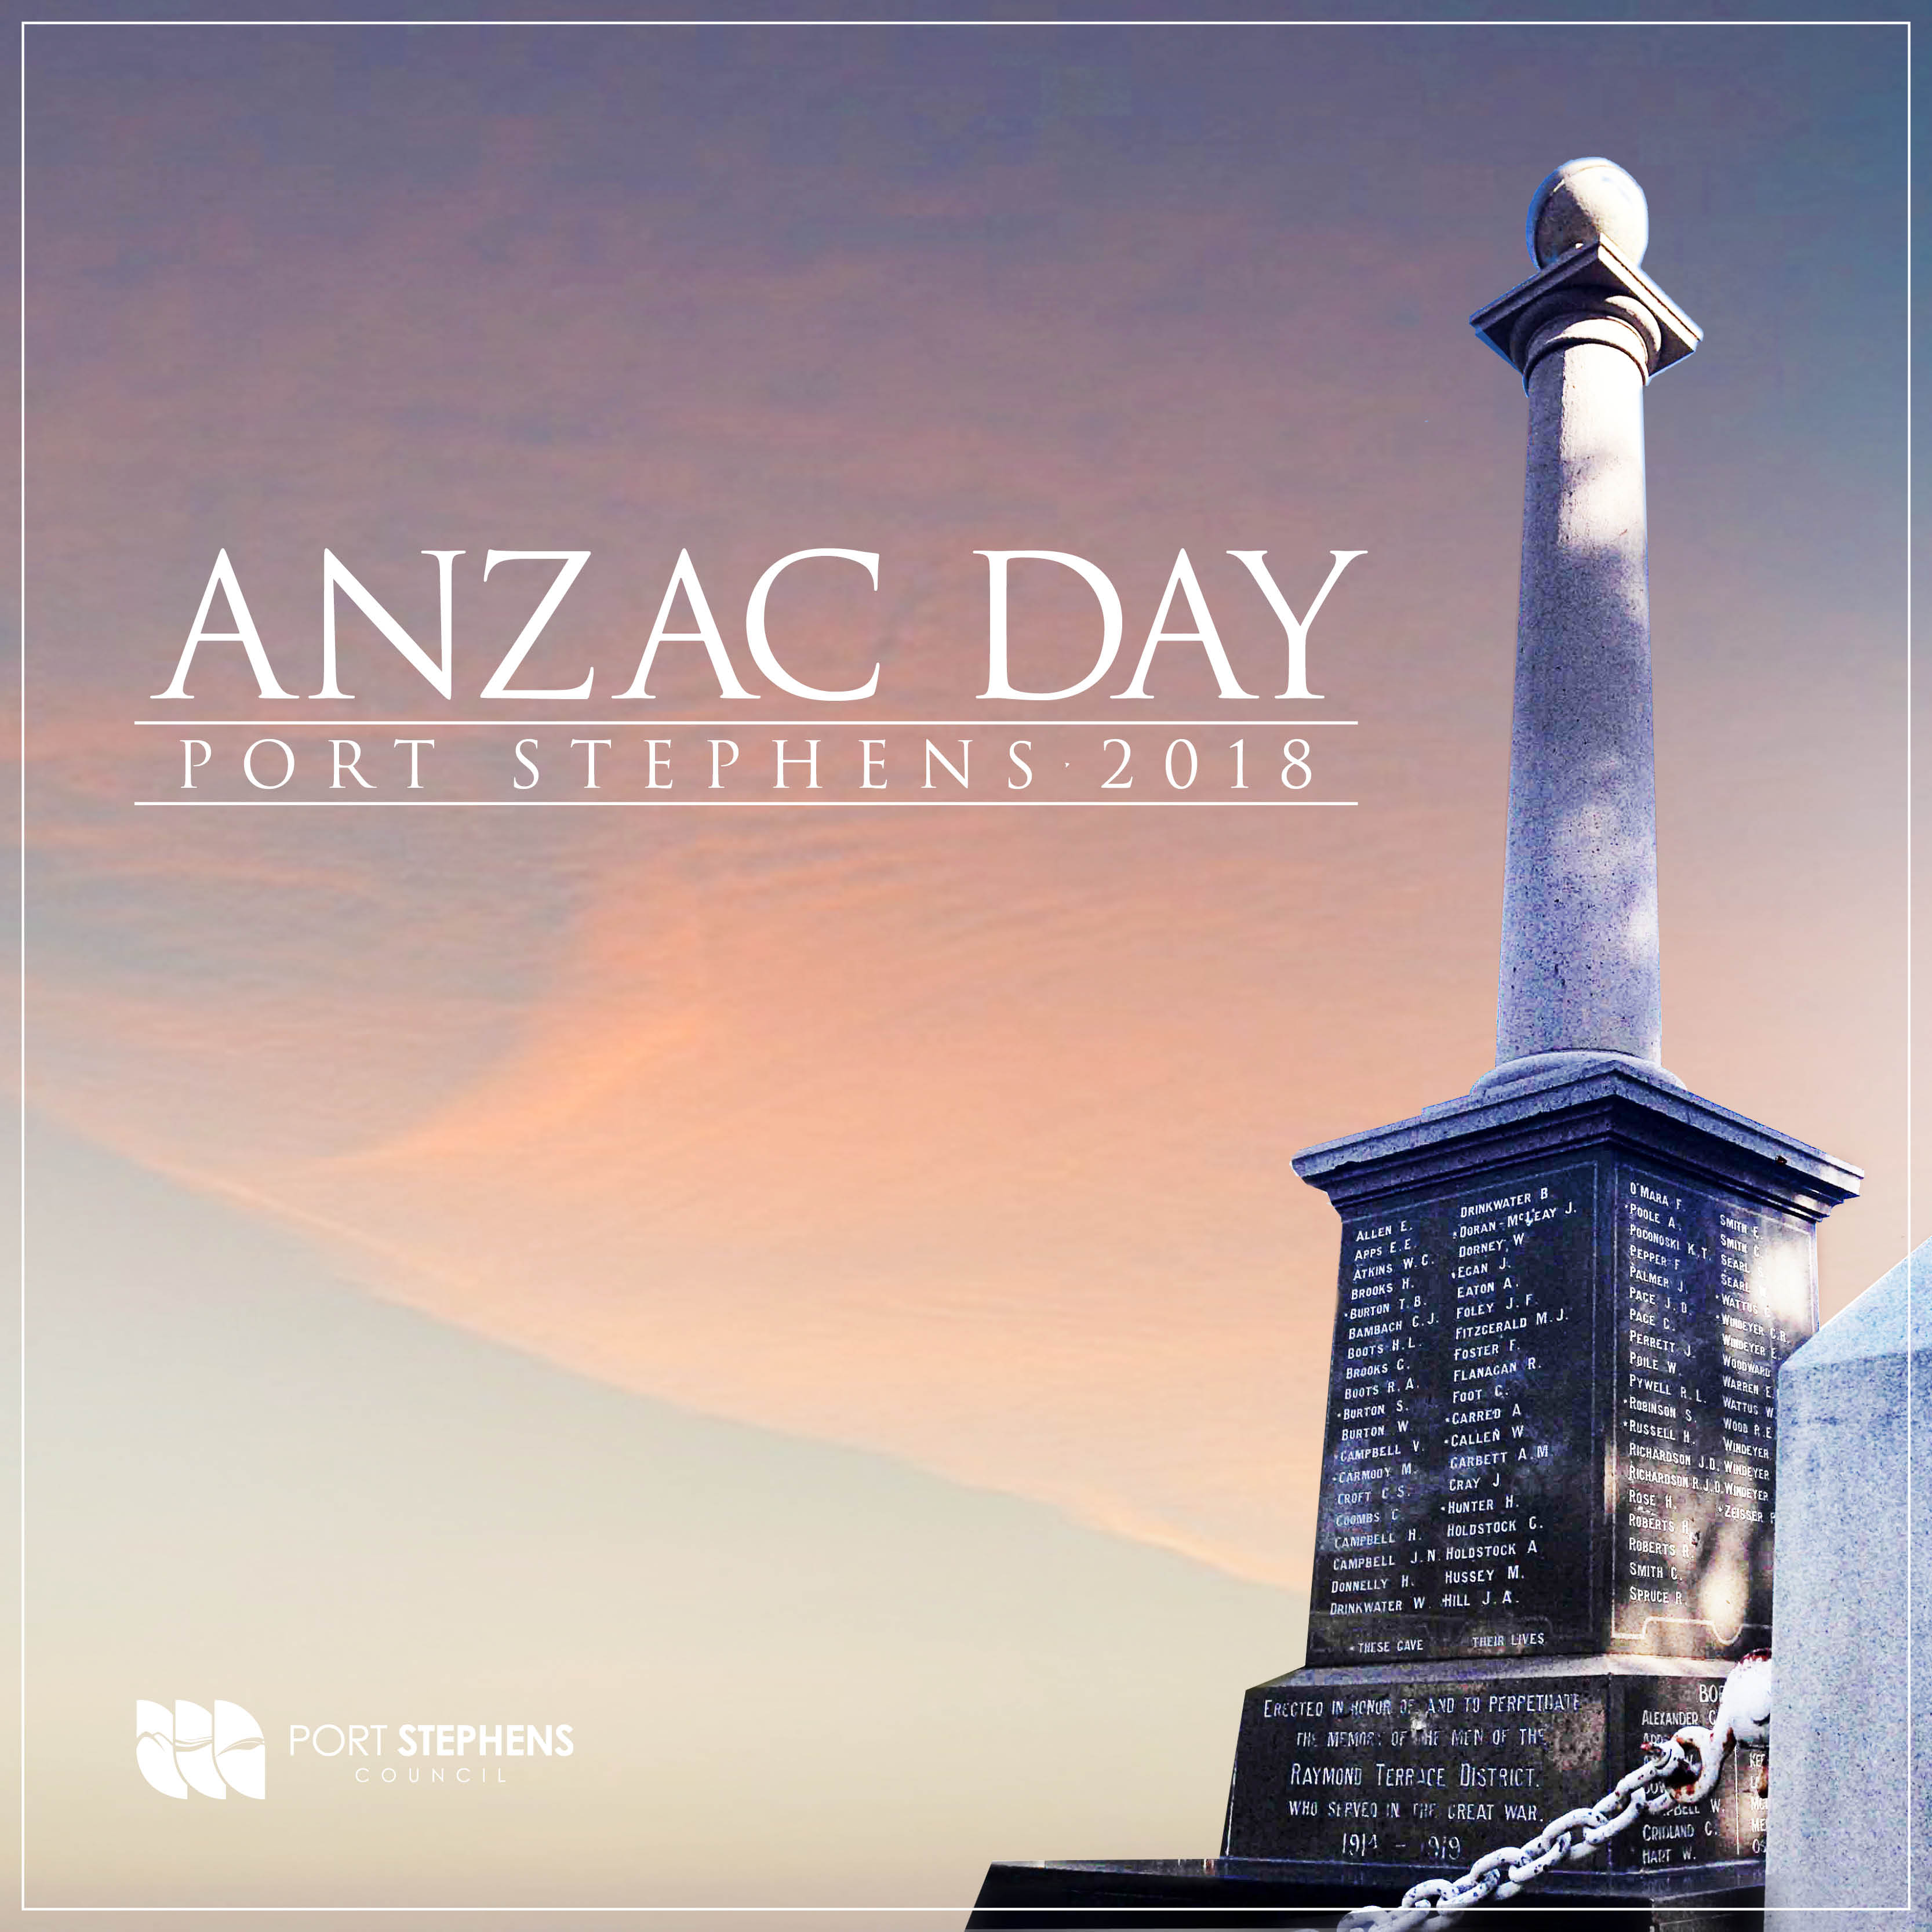 ANZAC Day In Port Stephens 2018